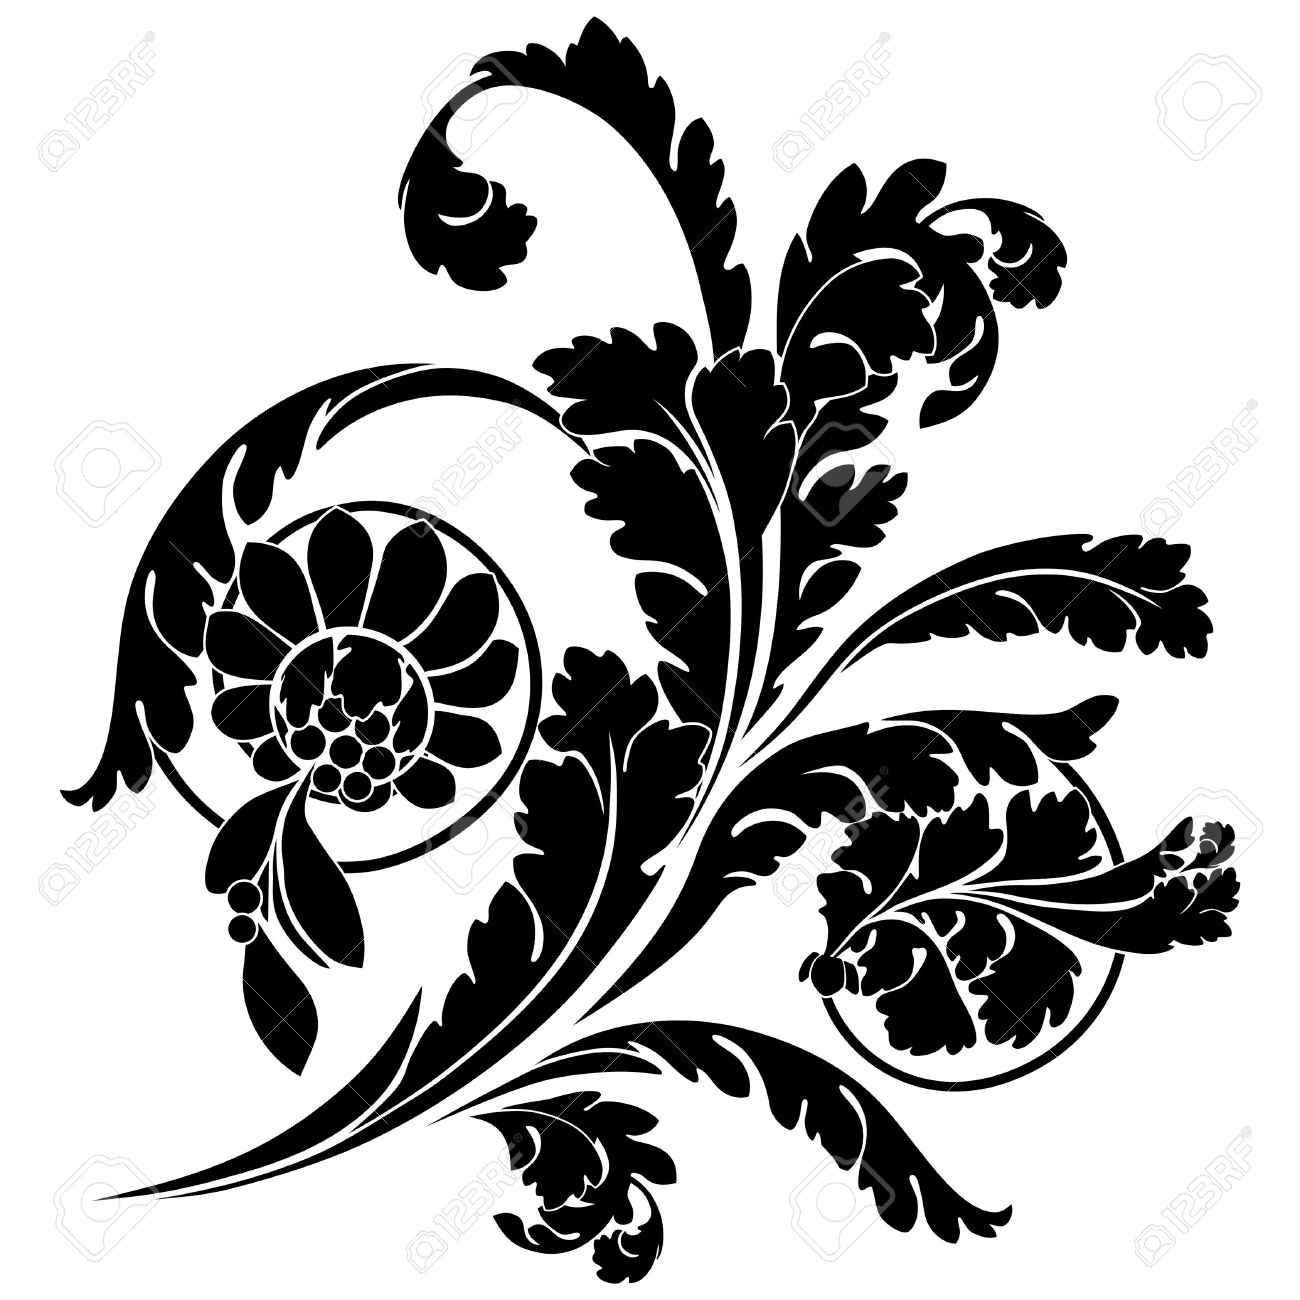 Elegant Black And White Flower Clipart.